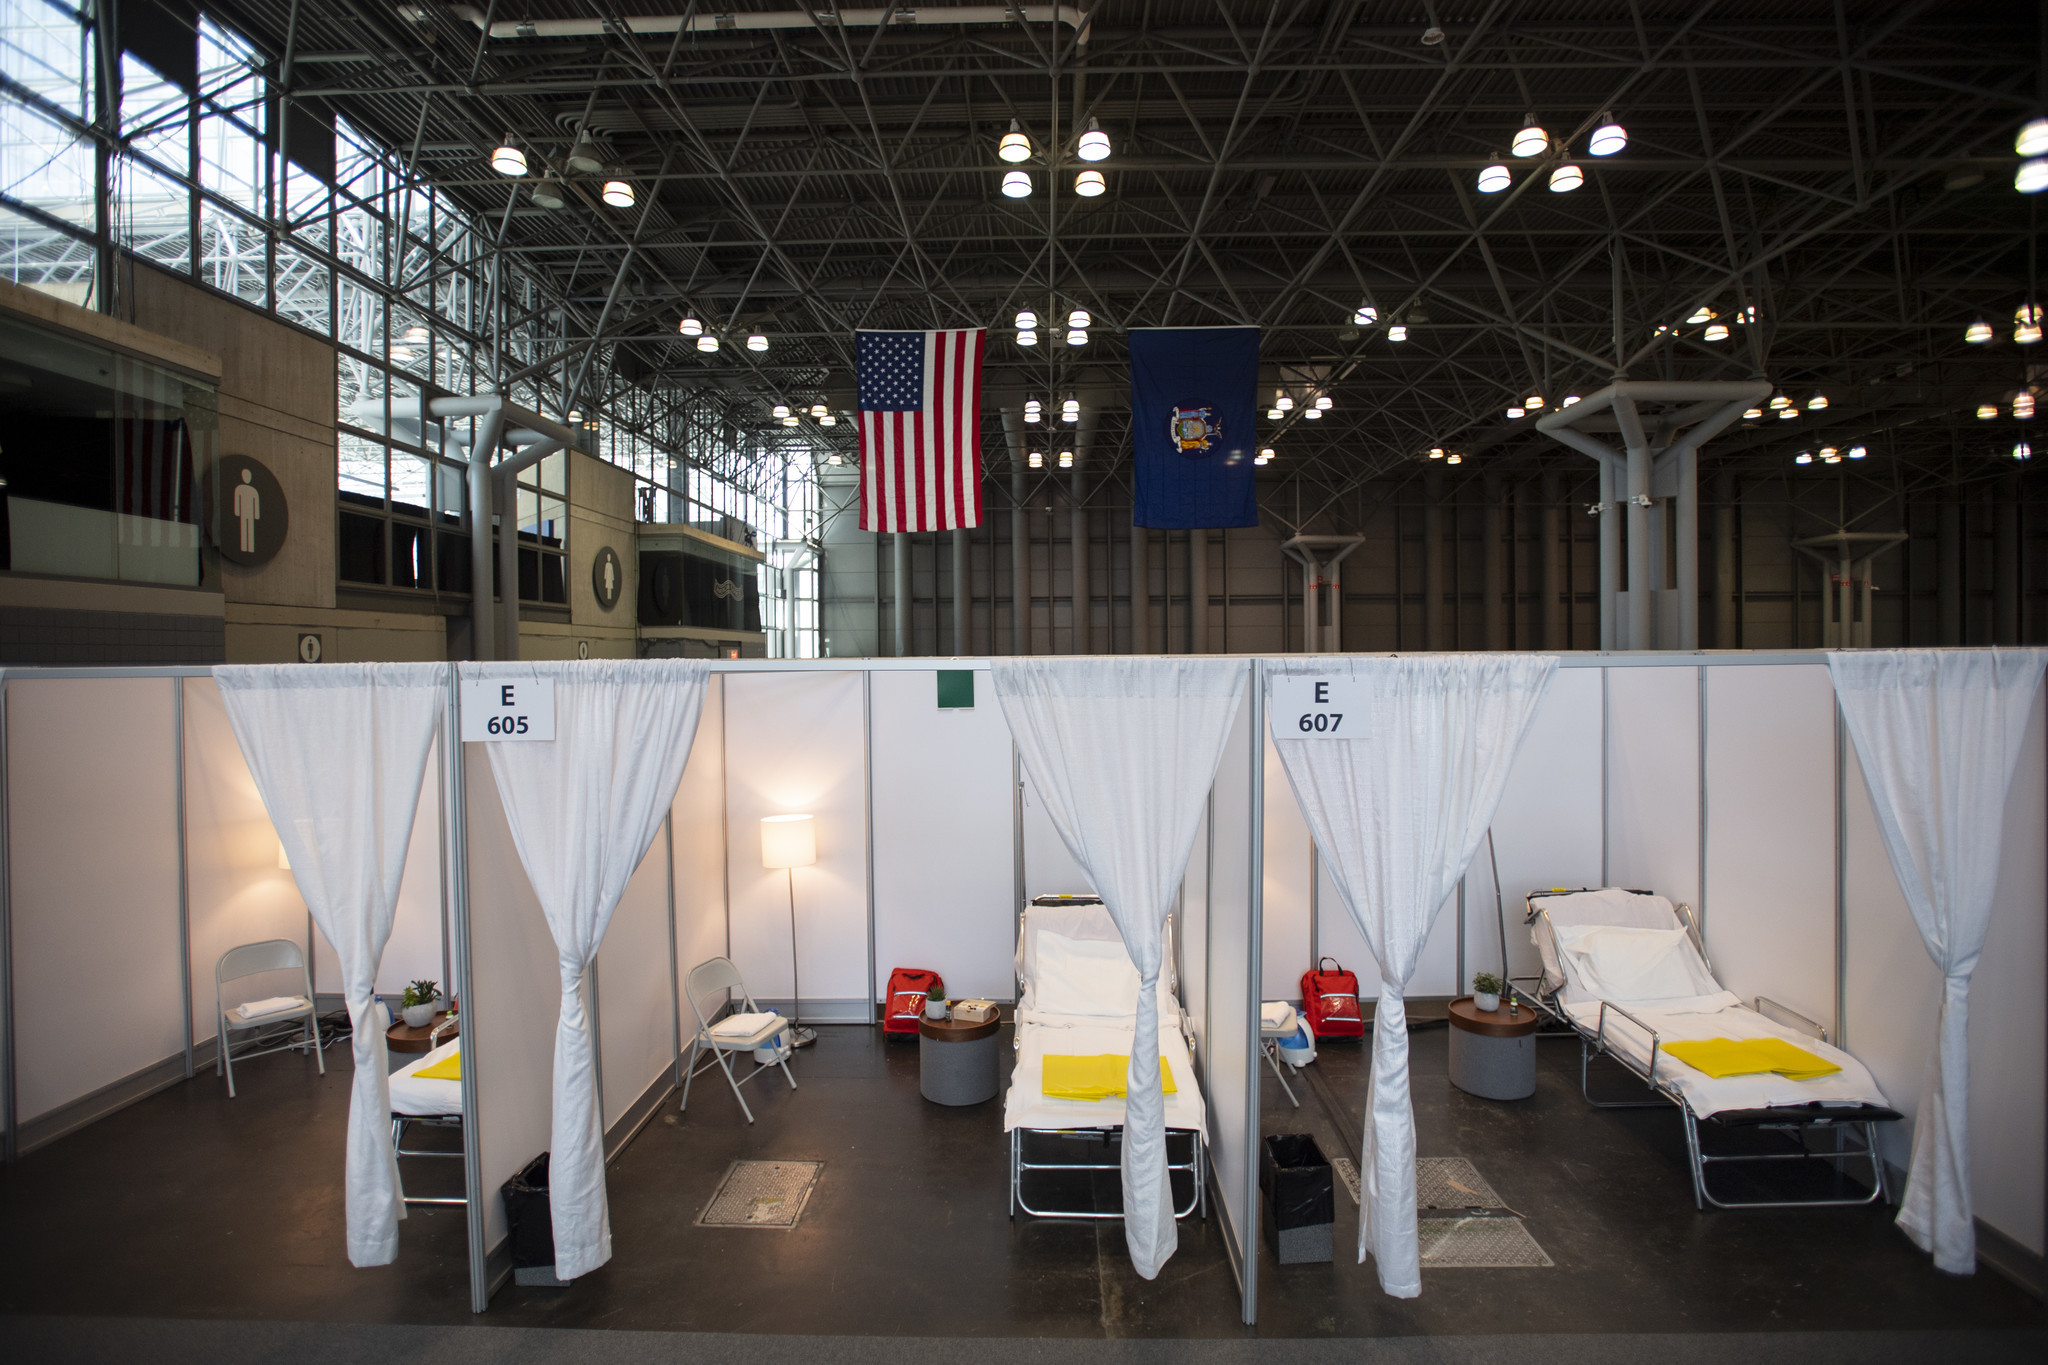 Javits Center in NYC to accept coronavirus patients